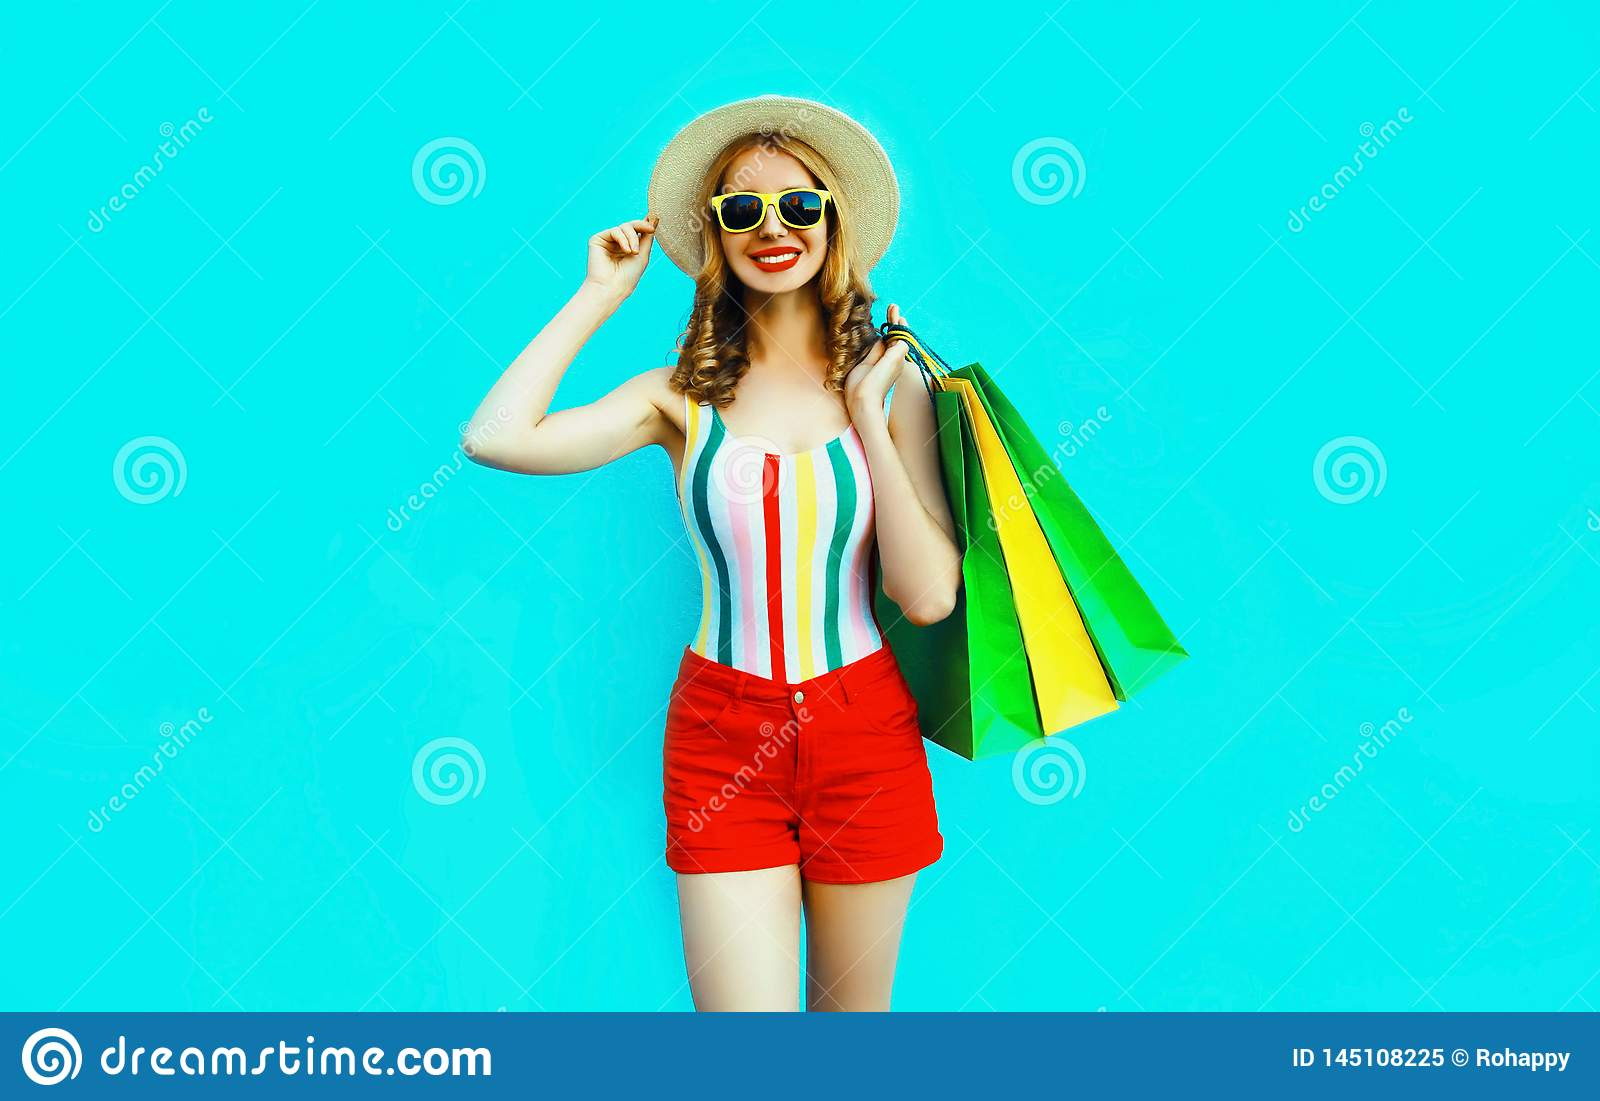 Portrait happy young smiling woman with shopping bags in colorful t-shirt, summer round hat on blue wall